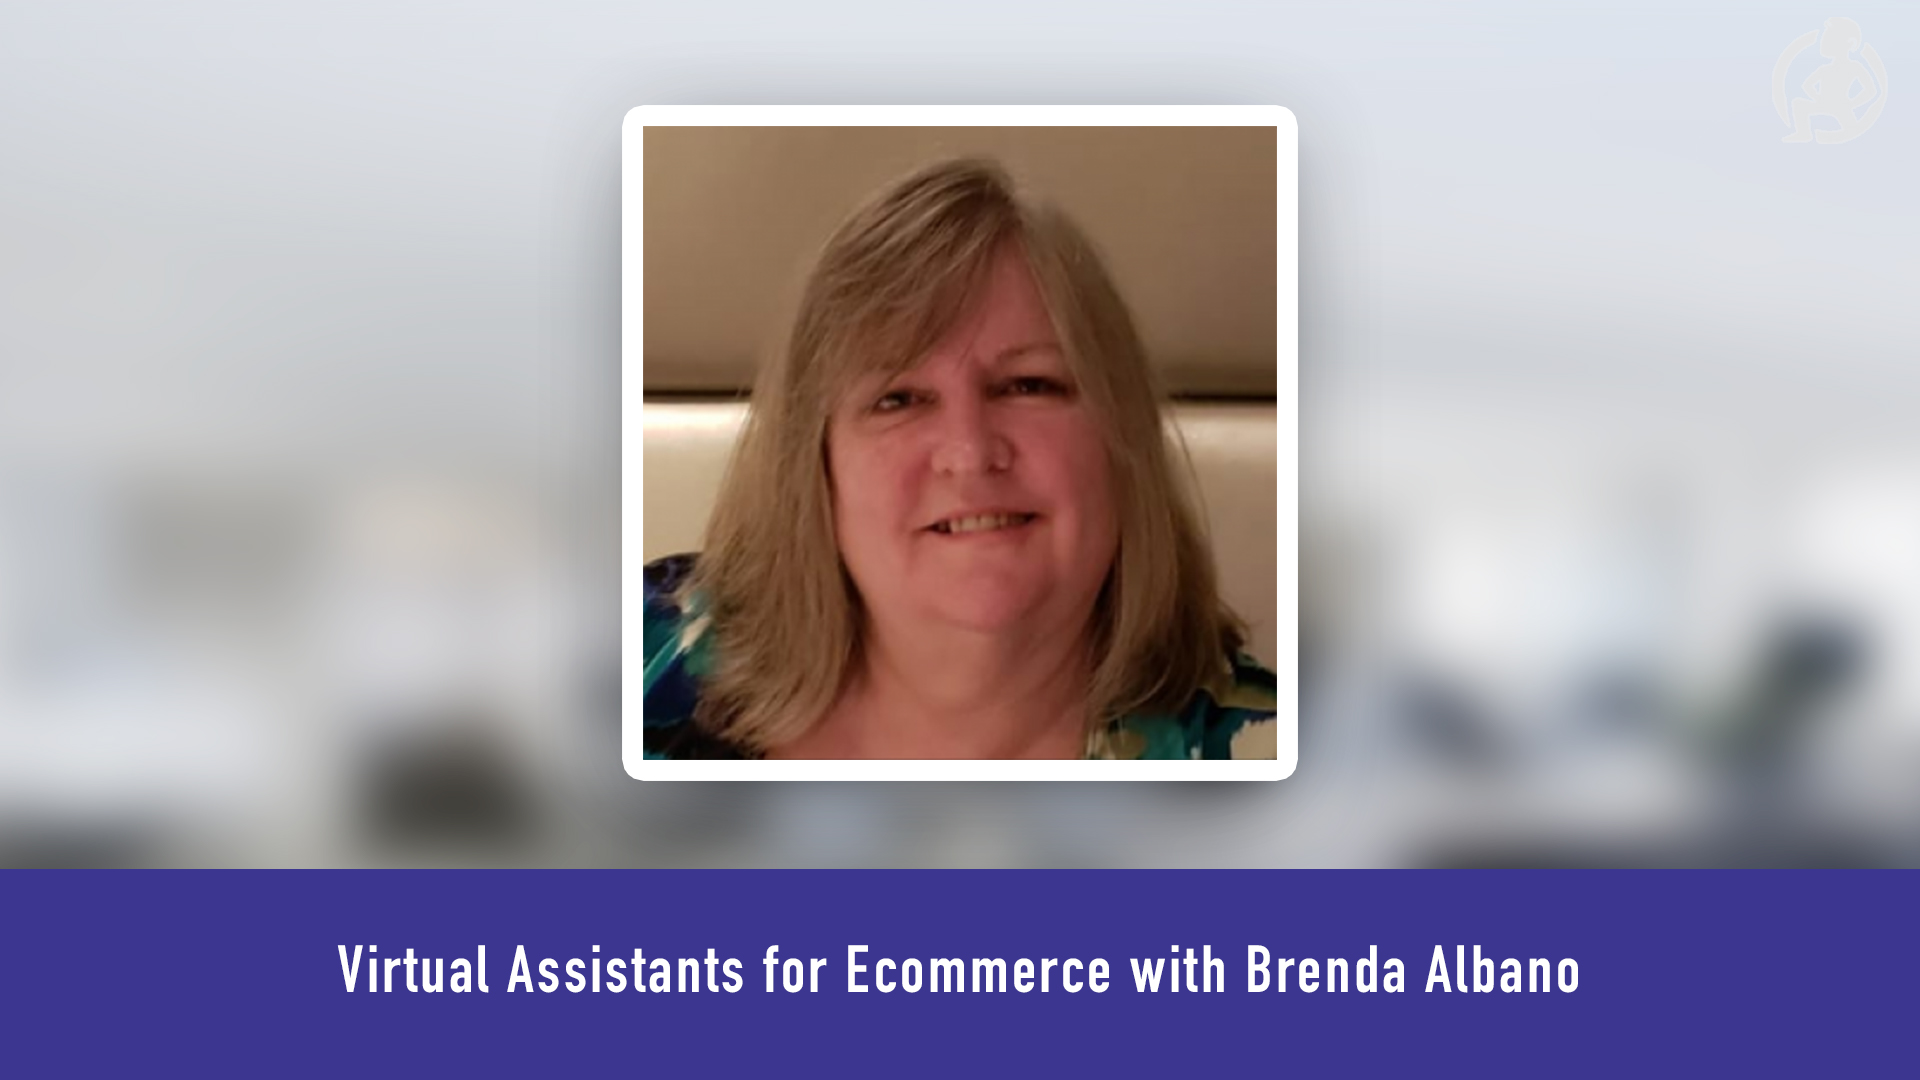 Virtual Assistants for Ecommerce withBrenda Albano Feature